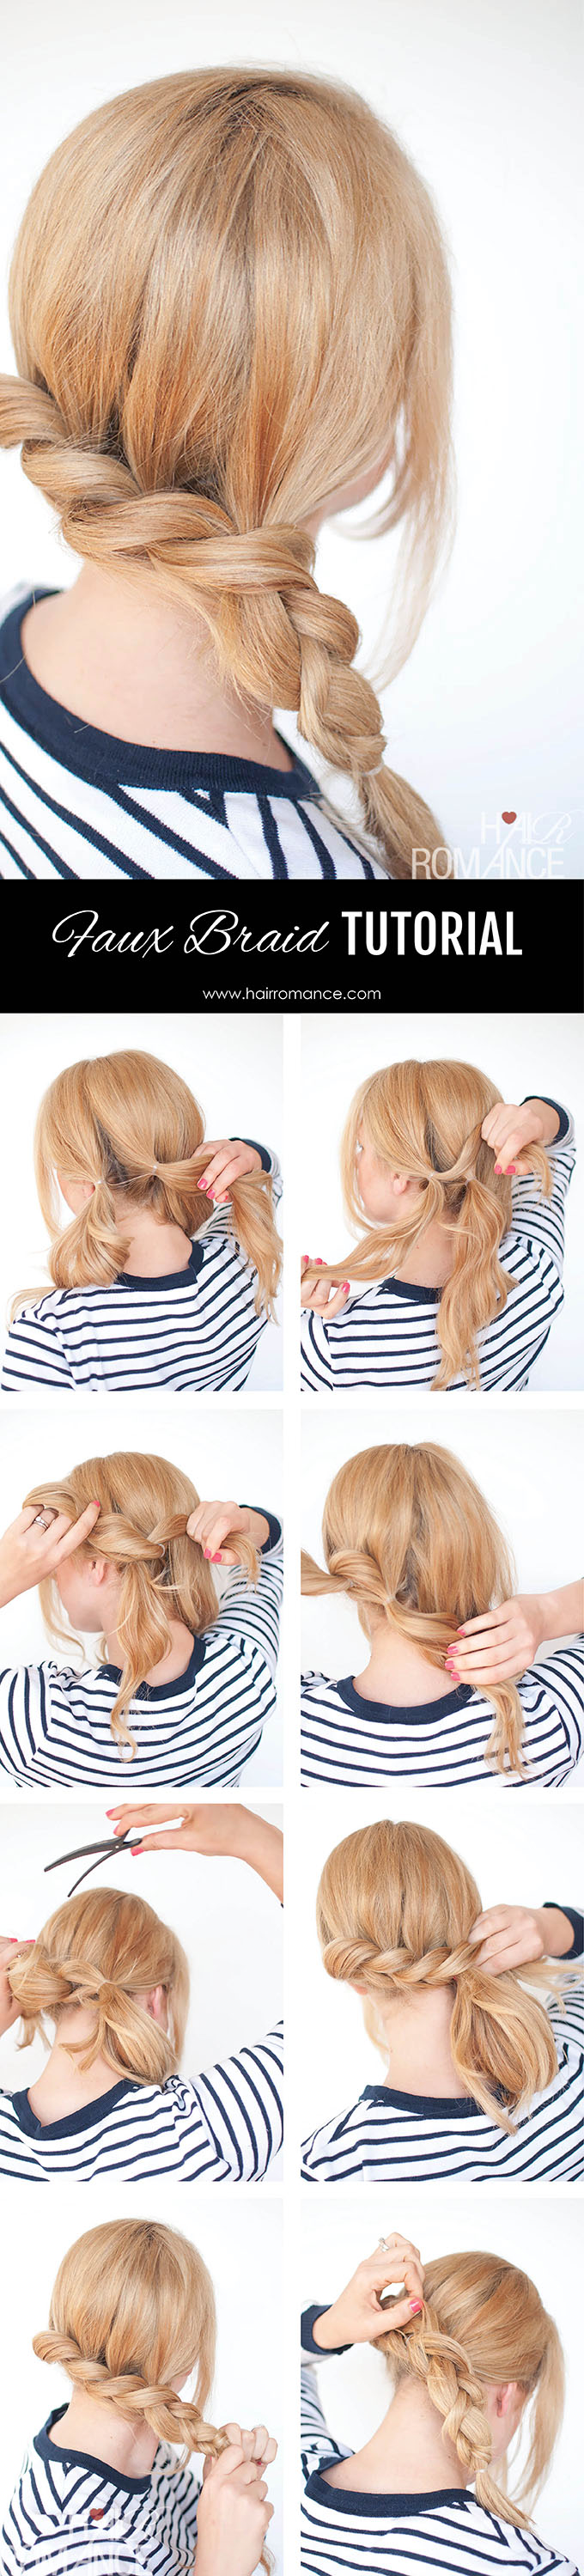 Hair Romance - Pull through braids tutorial 3